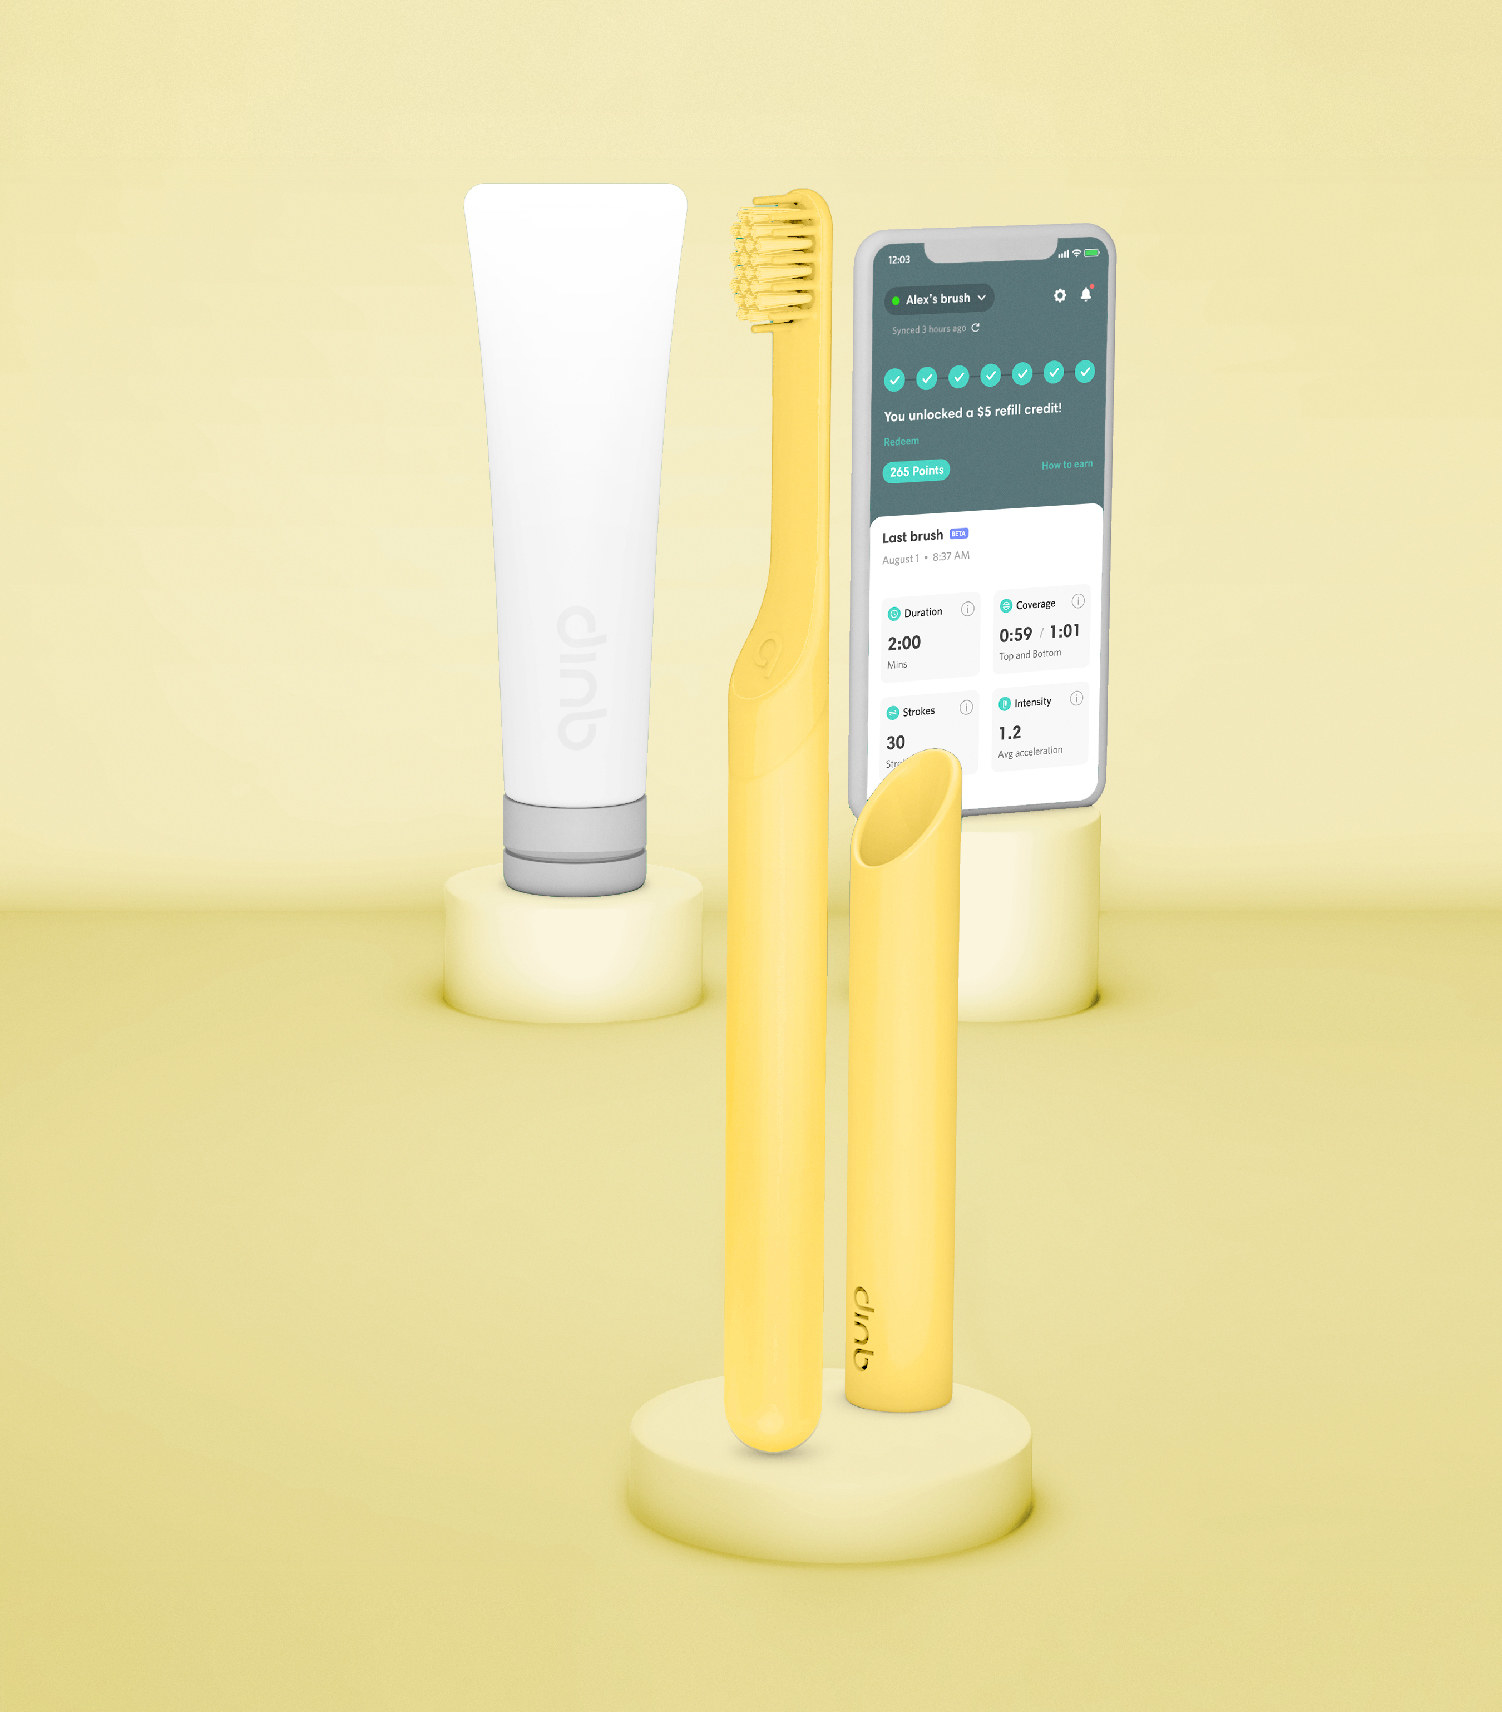 The toothbrush bundle in yellow